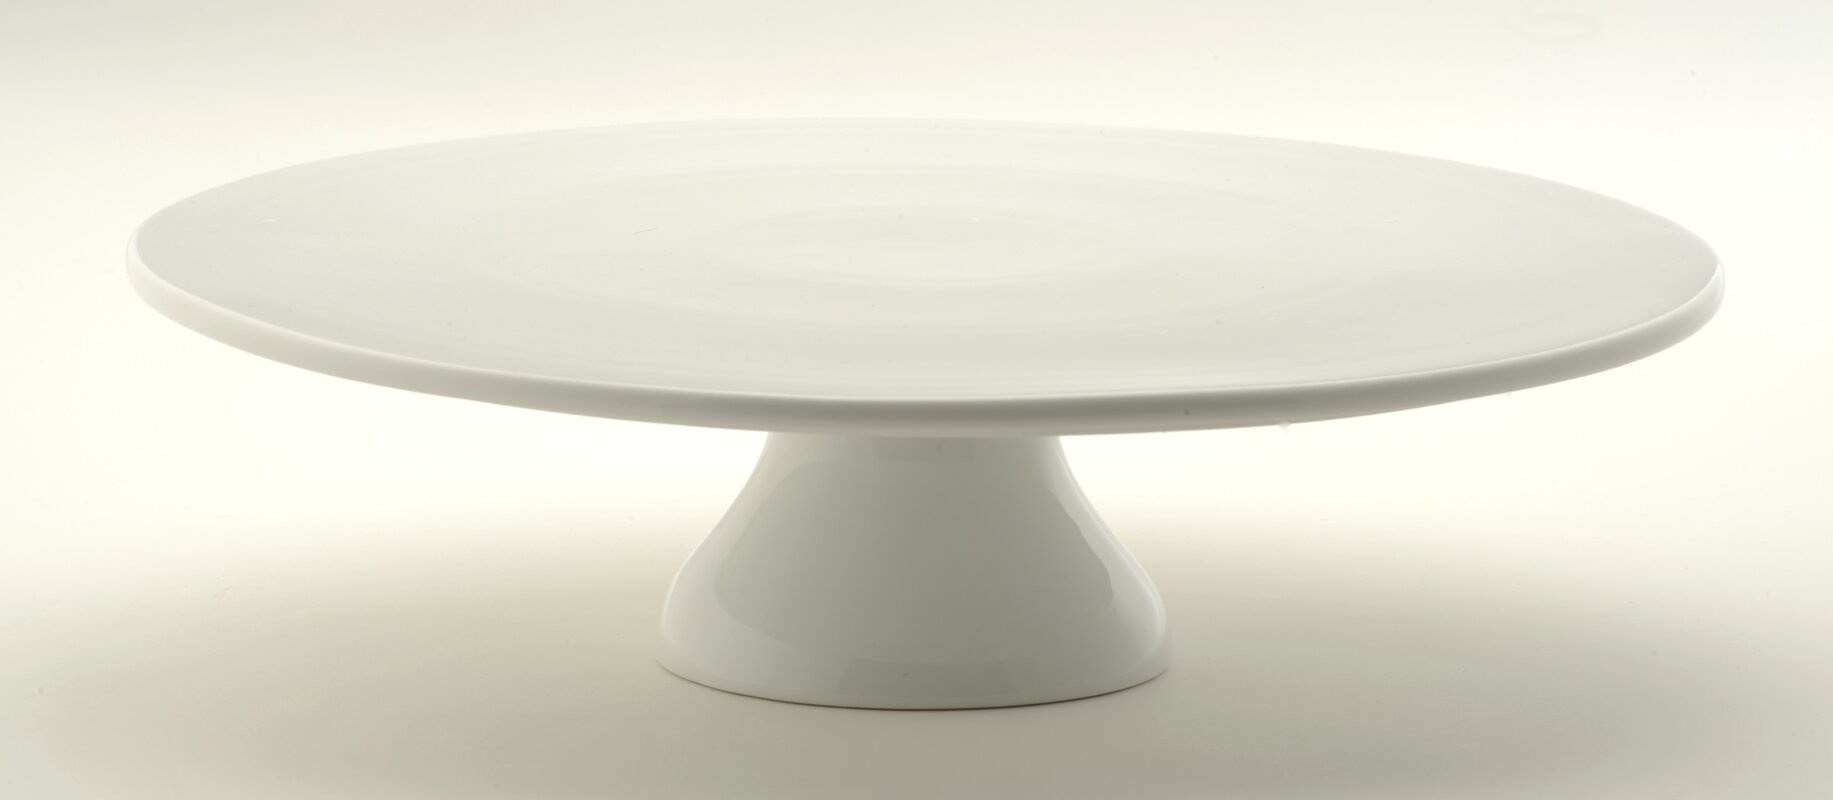 zealand pretty hire small the milk large assorted gallery auckland glass props white cake stand new sizes pedestal